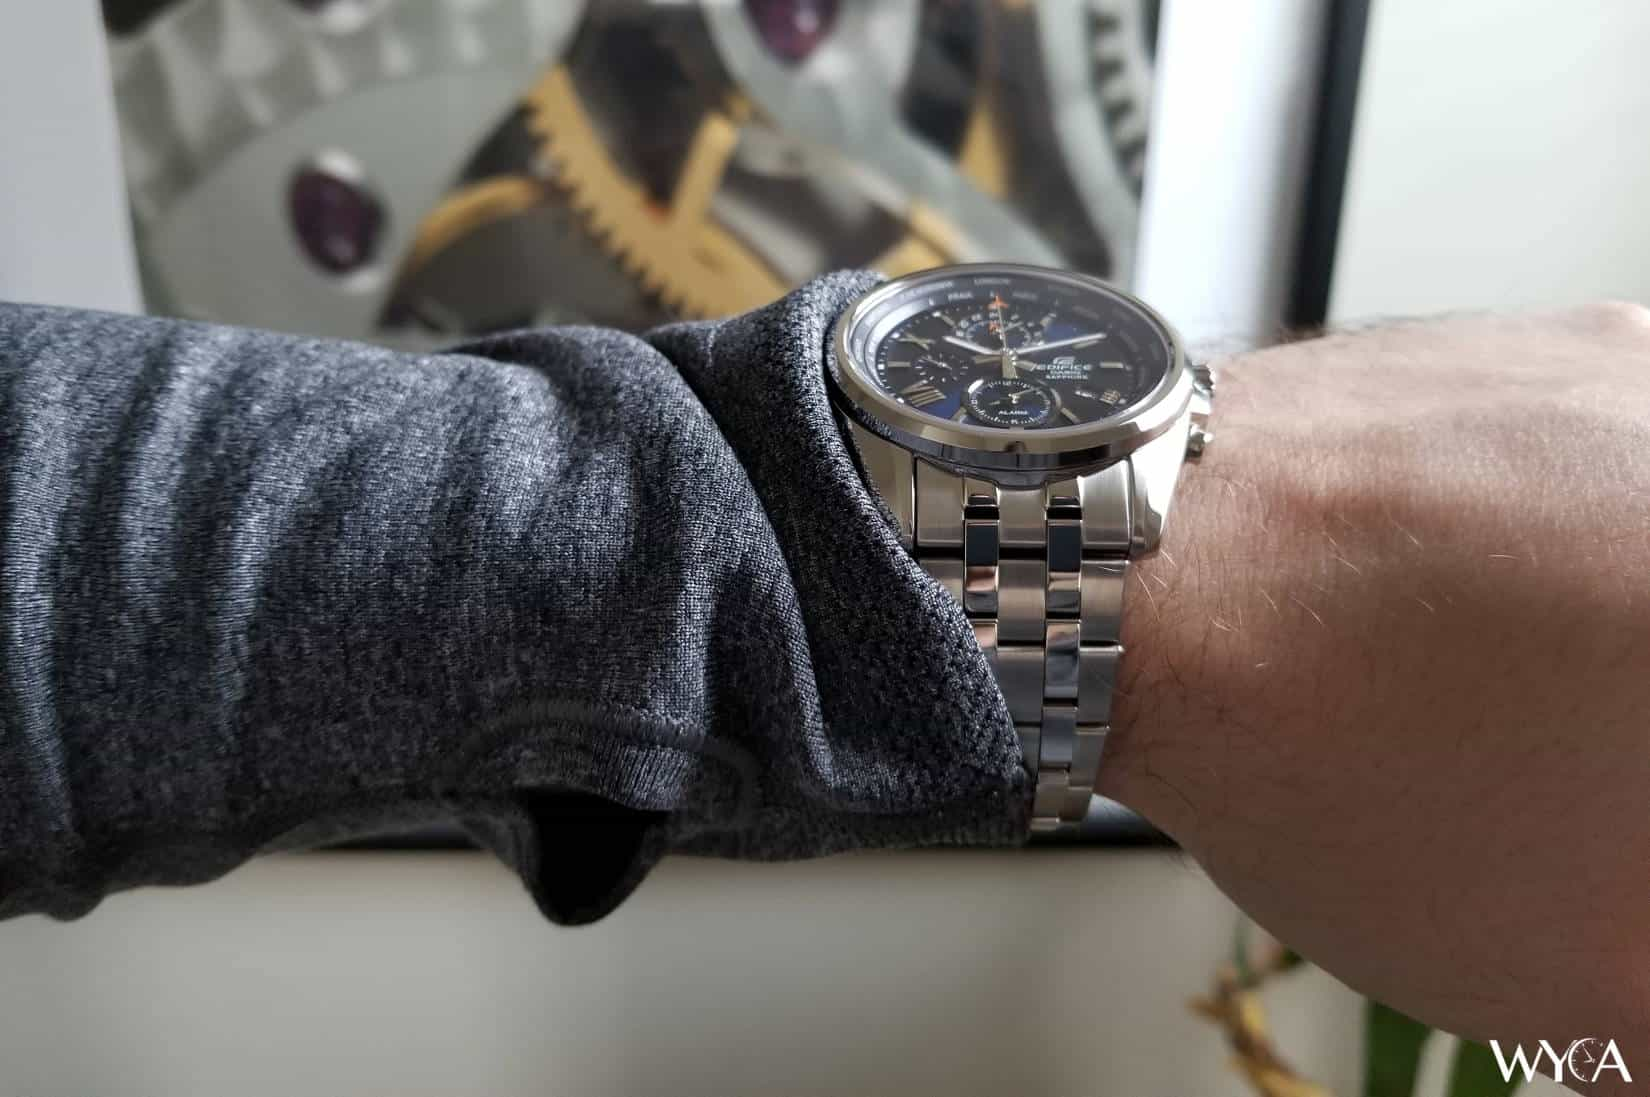 Casio Edifice World Time Wrist Shot